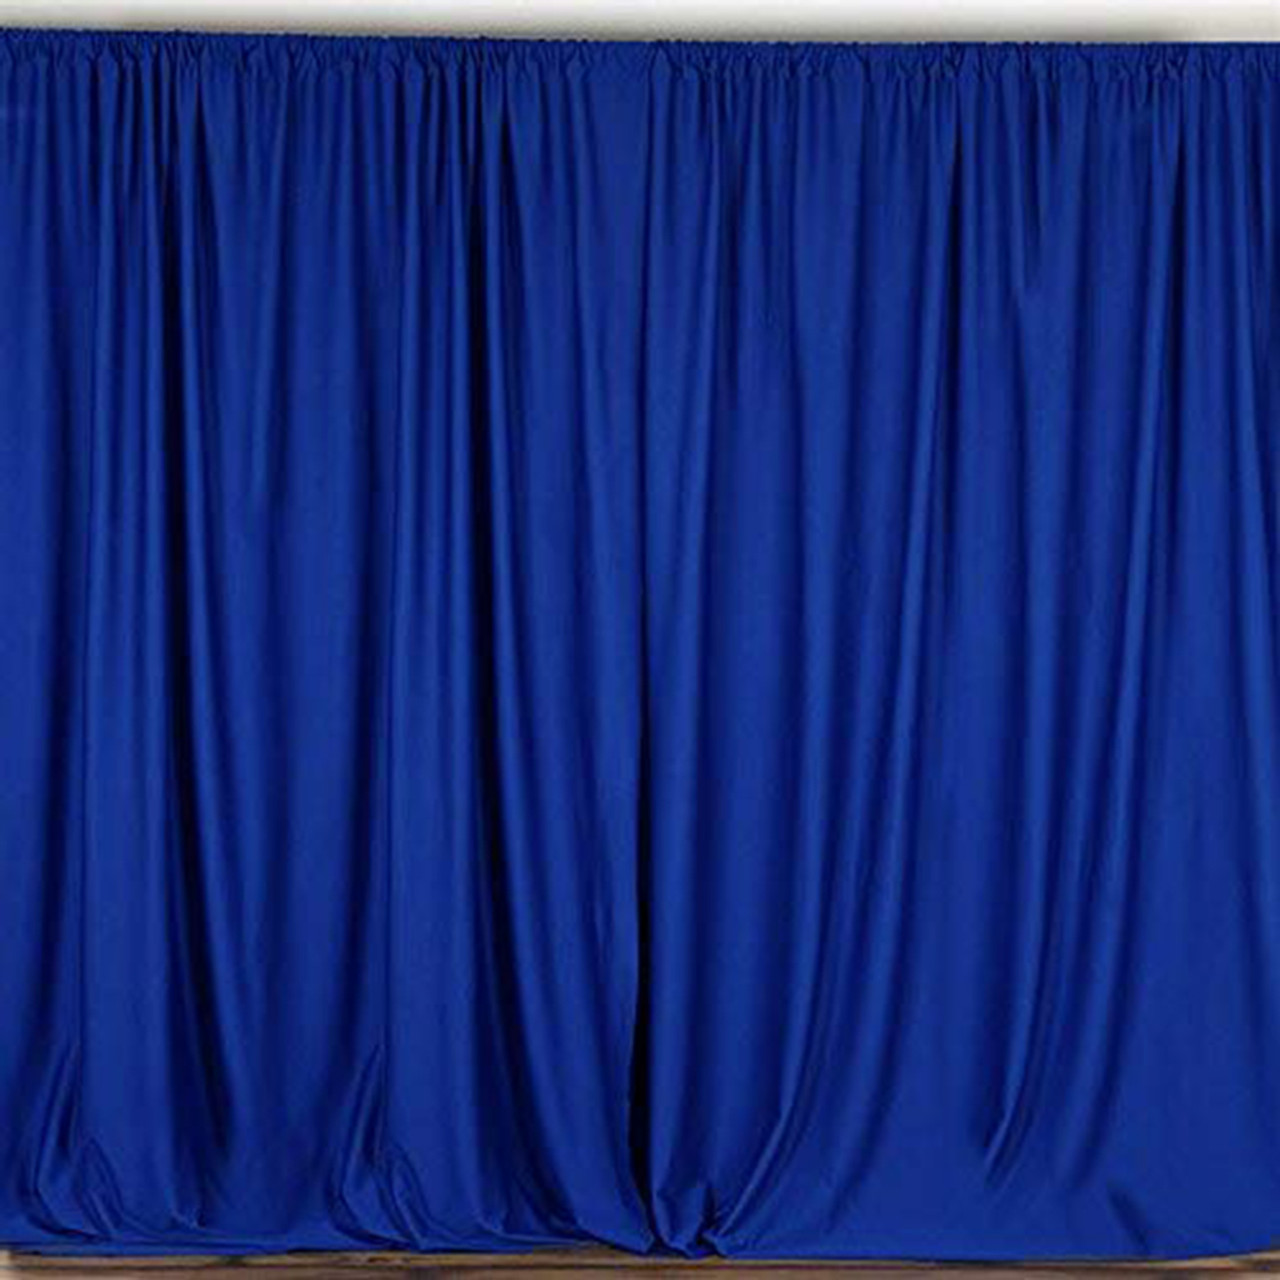 2 pack 10 feet polyester backdrop drapes curtains panels with rod pockets wedding ceremony party home window decorations royal blue